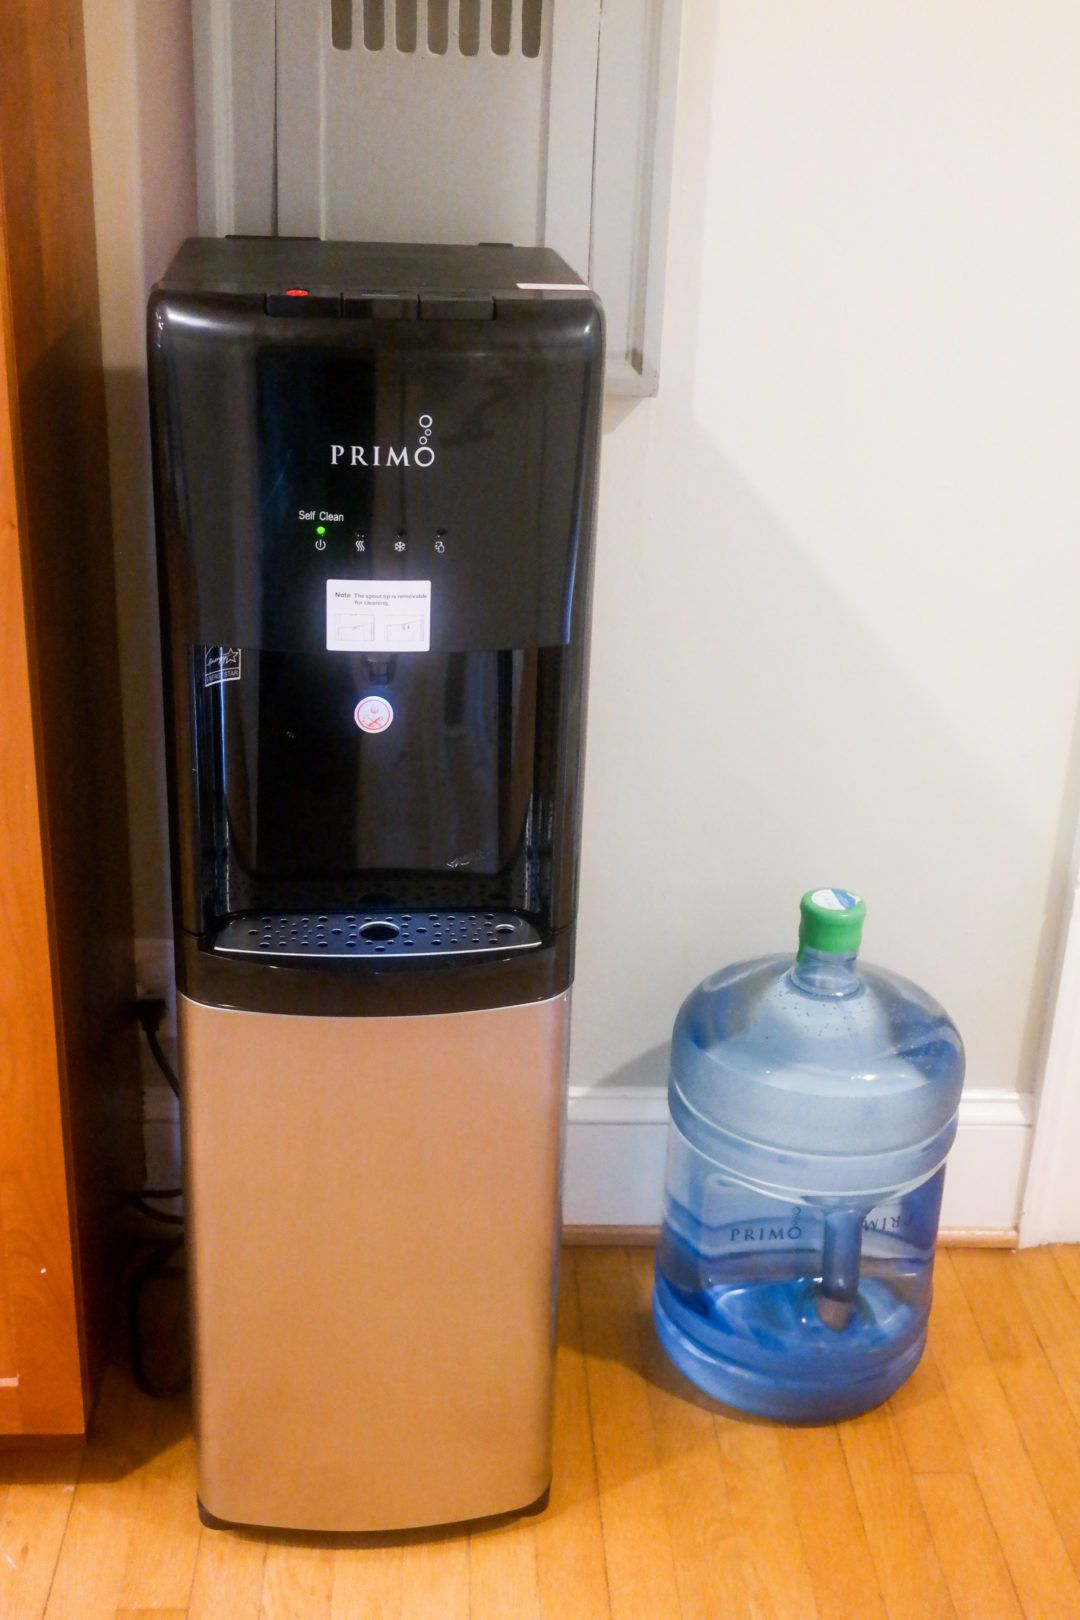 My Experience With Primo Water An At Home Purified Water Dispenser Water Dispenser Shower Filter Filtered Water Dispenser